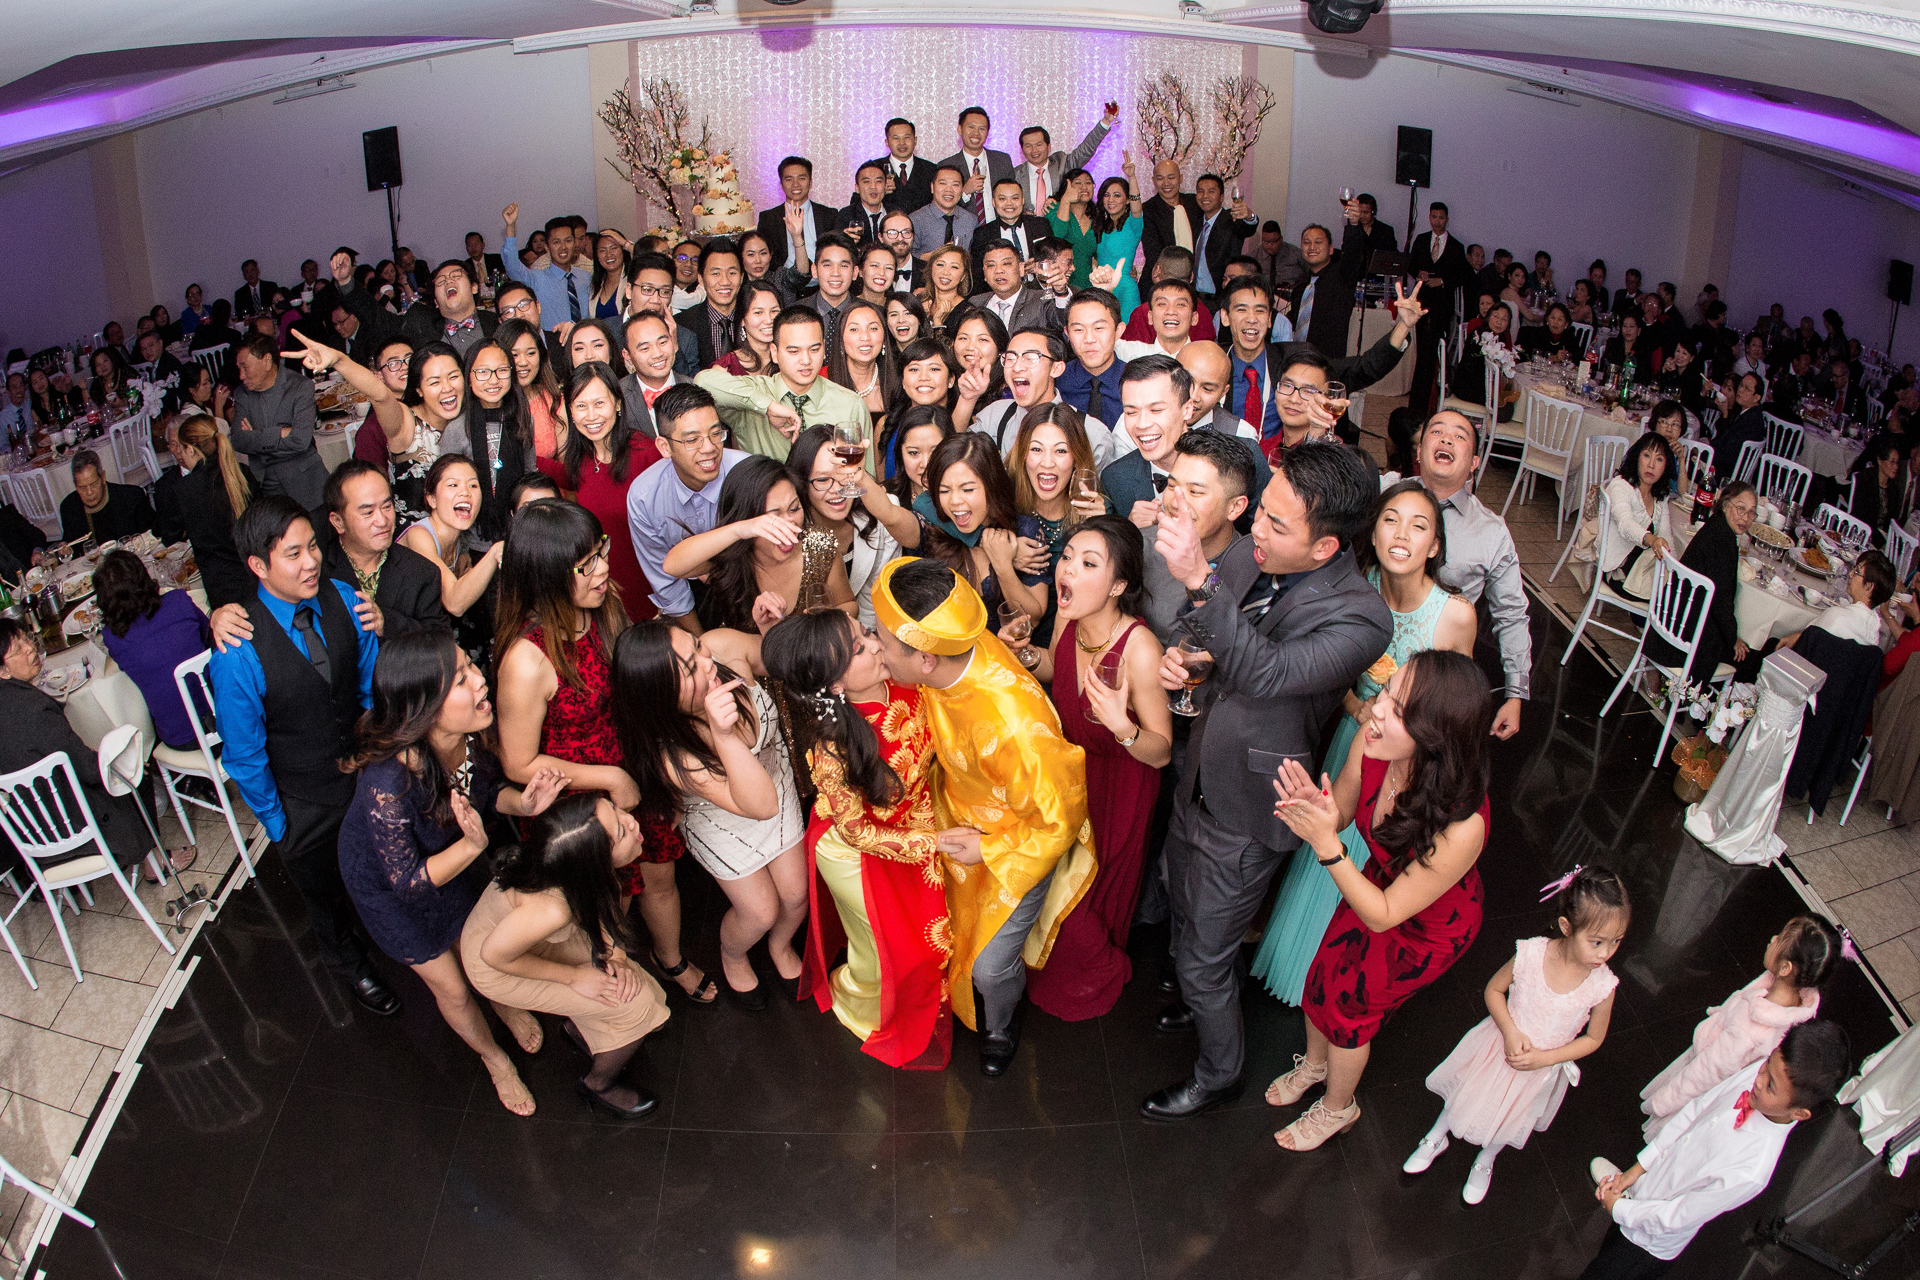 YOUR SPECIAL DAY IS OUR SPECIALTY - WEDDING DJ | MC | PHOTO BOOTH